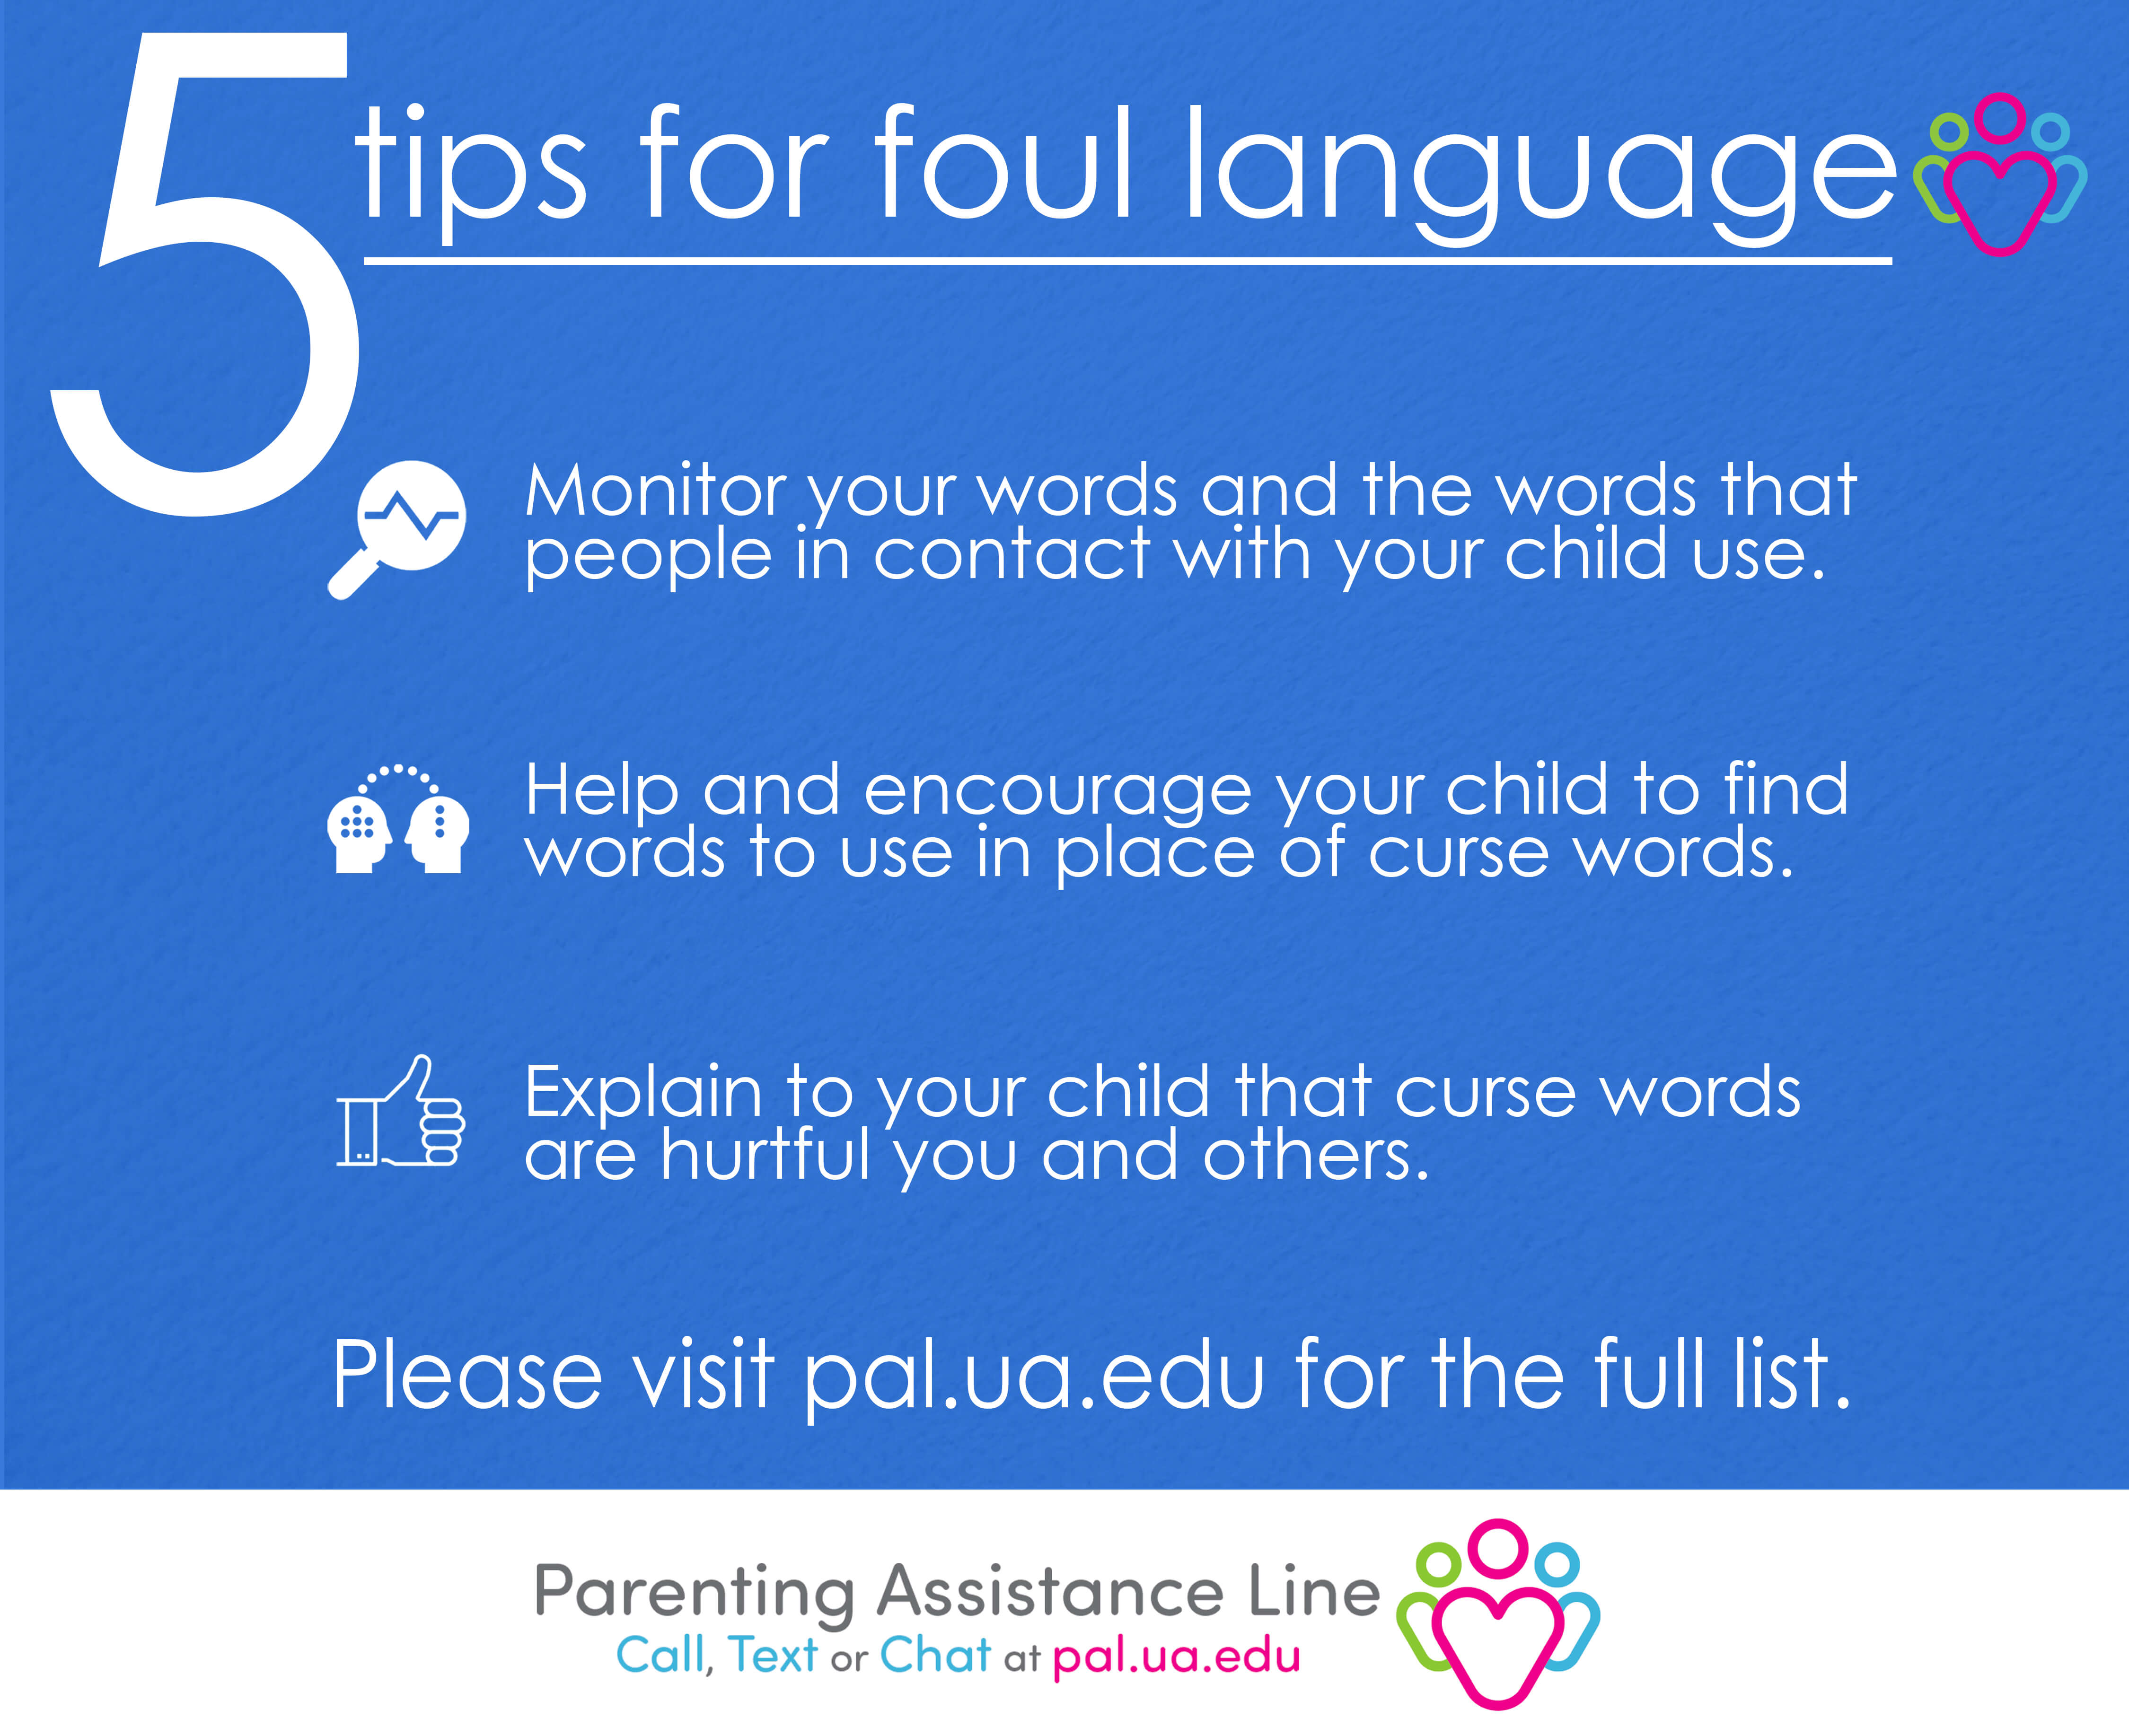 5 tips for foul language